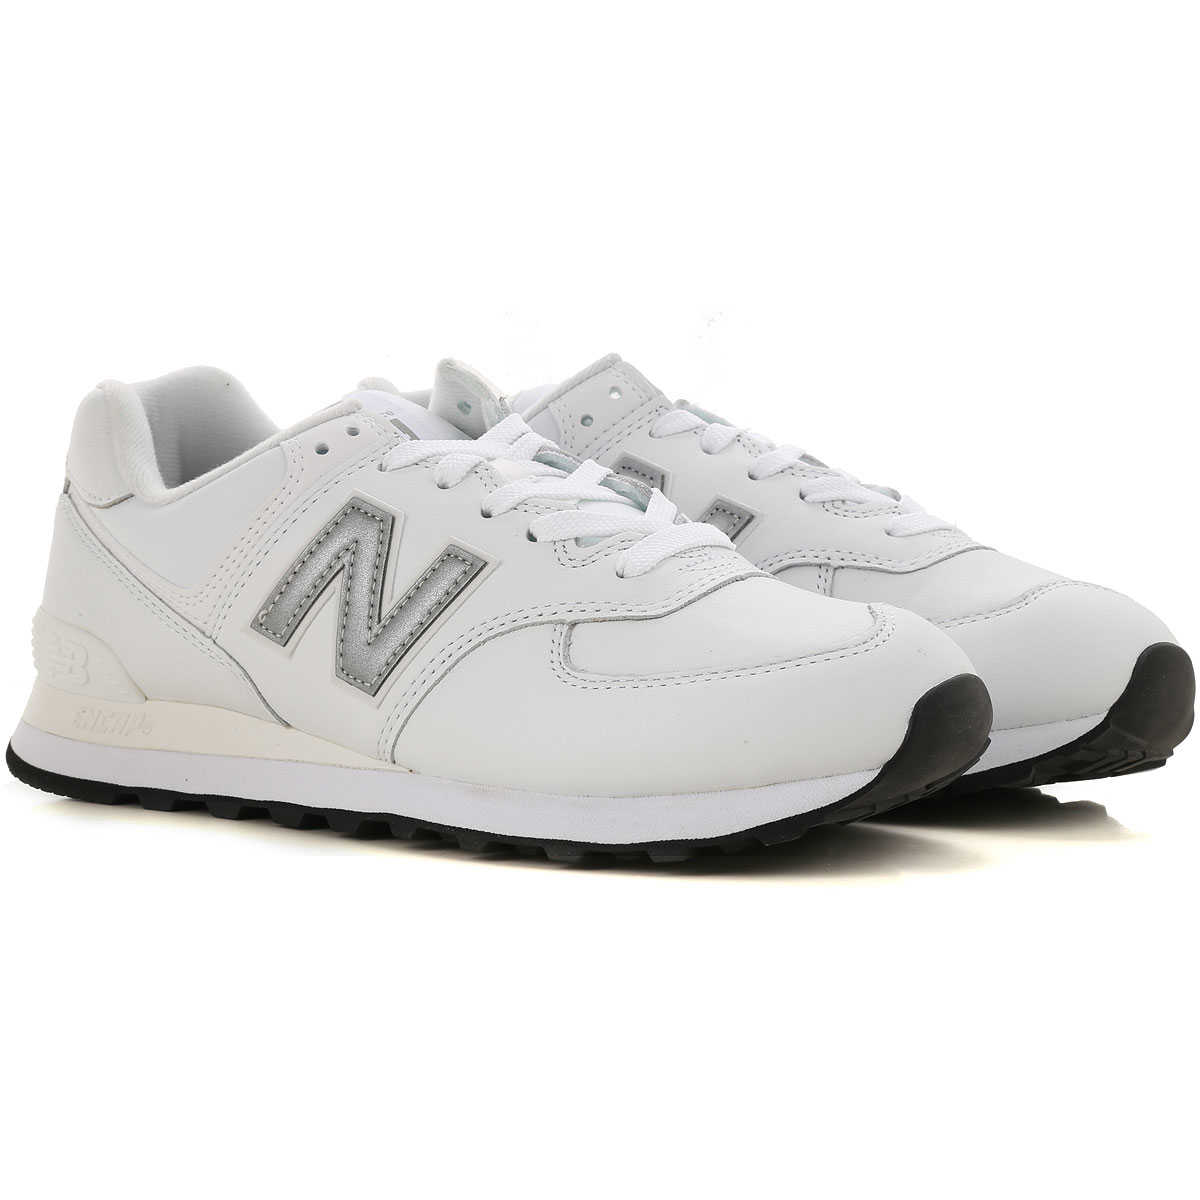 New Balance Sneakers for Men On Sale